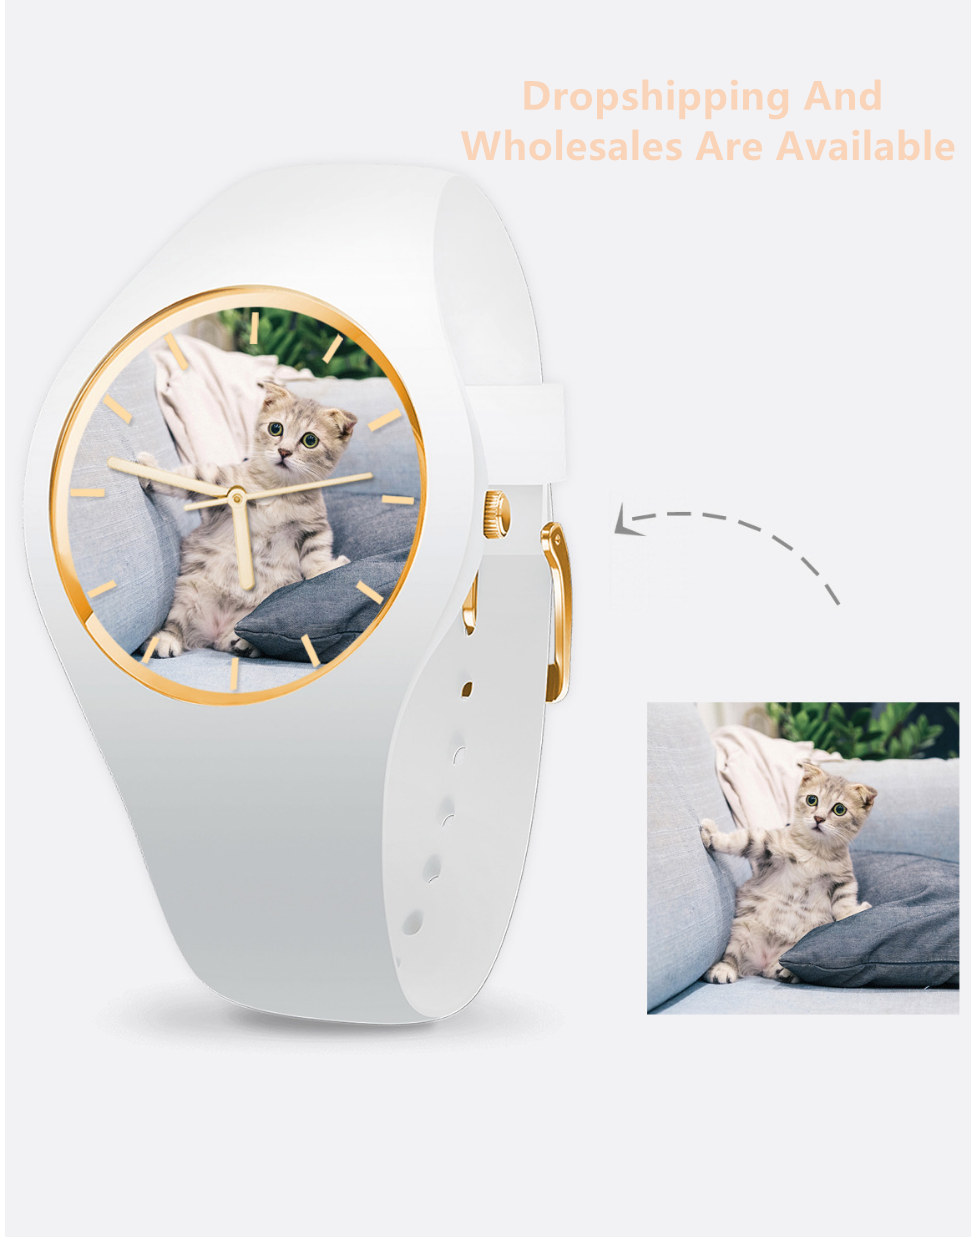 Personalized Photo Silicone Watch,Personalized Photo Watch,Custom Pet Watch,Personalized Custom Pet Watch,Pet Photo Watch